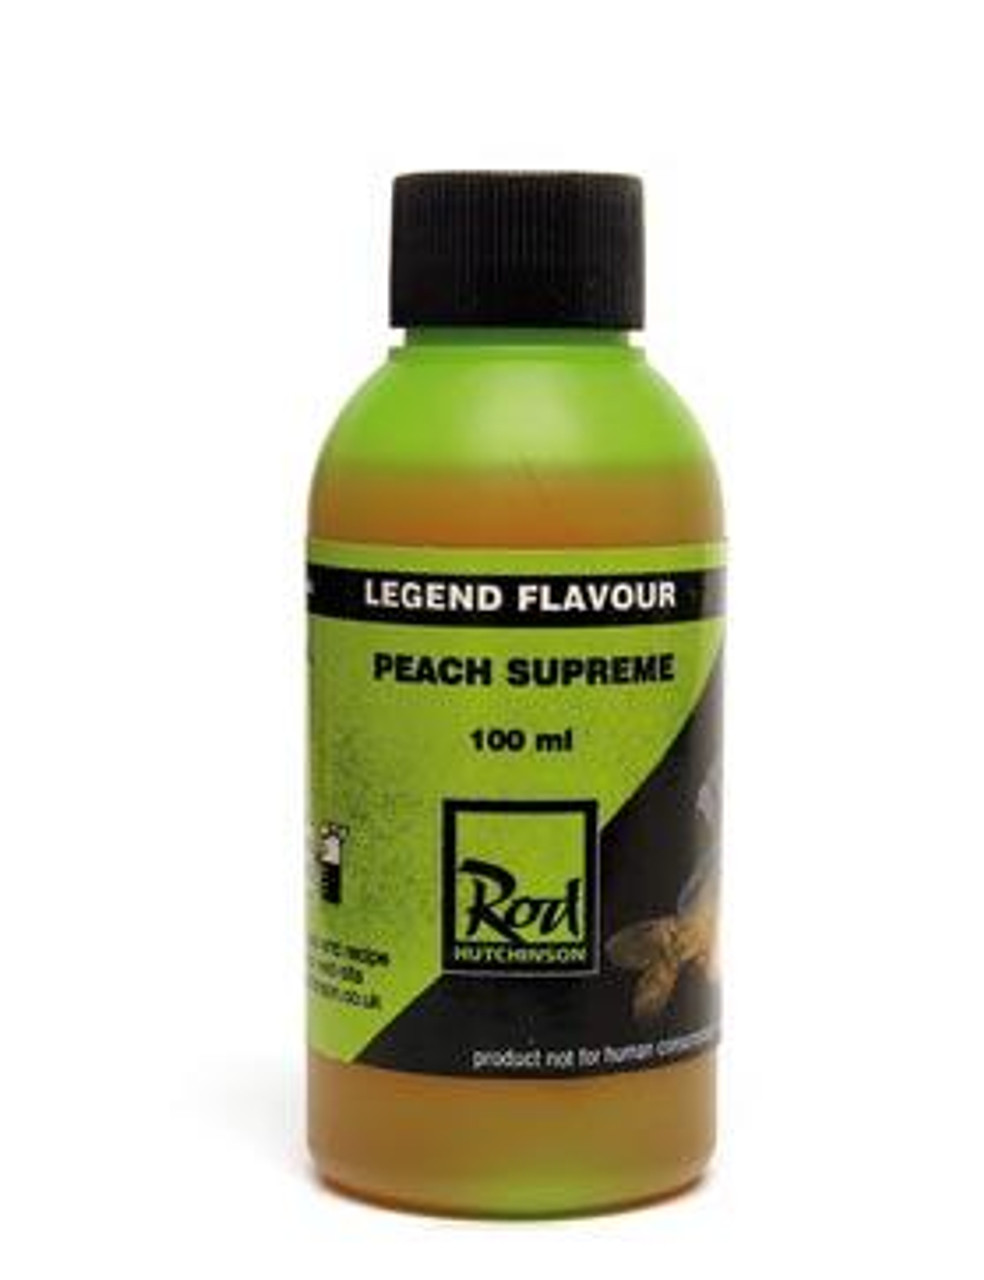 Rod Hutchinson Legend Flavour Peach Supreme 100 ml